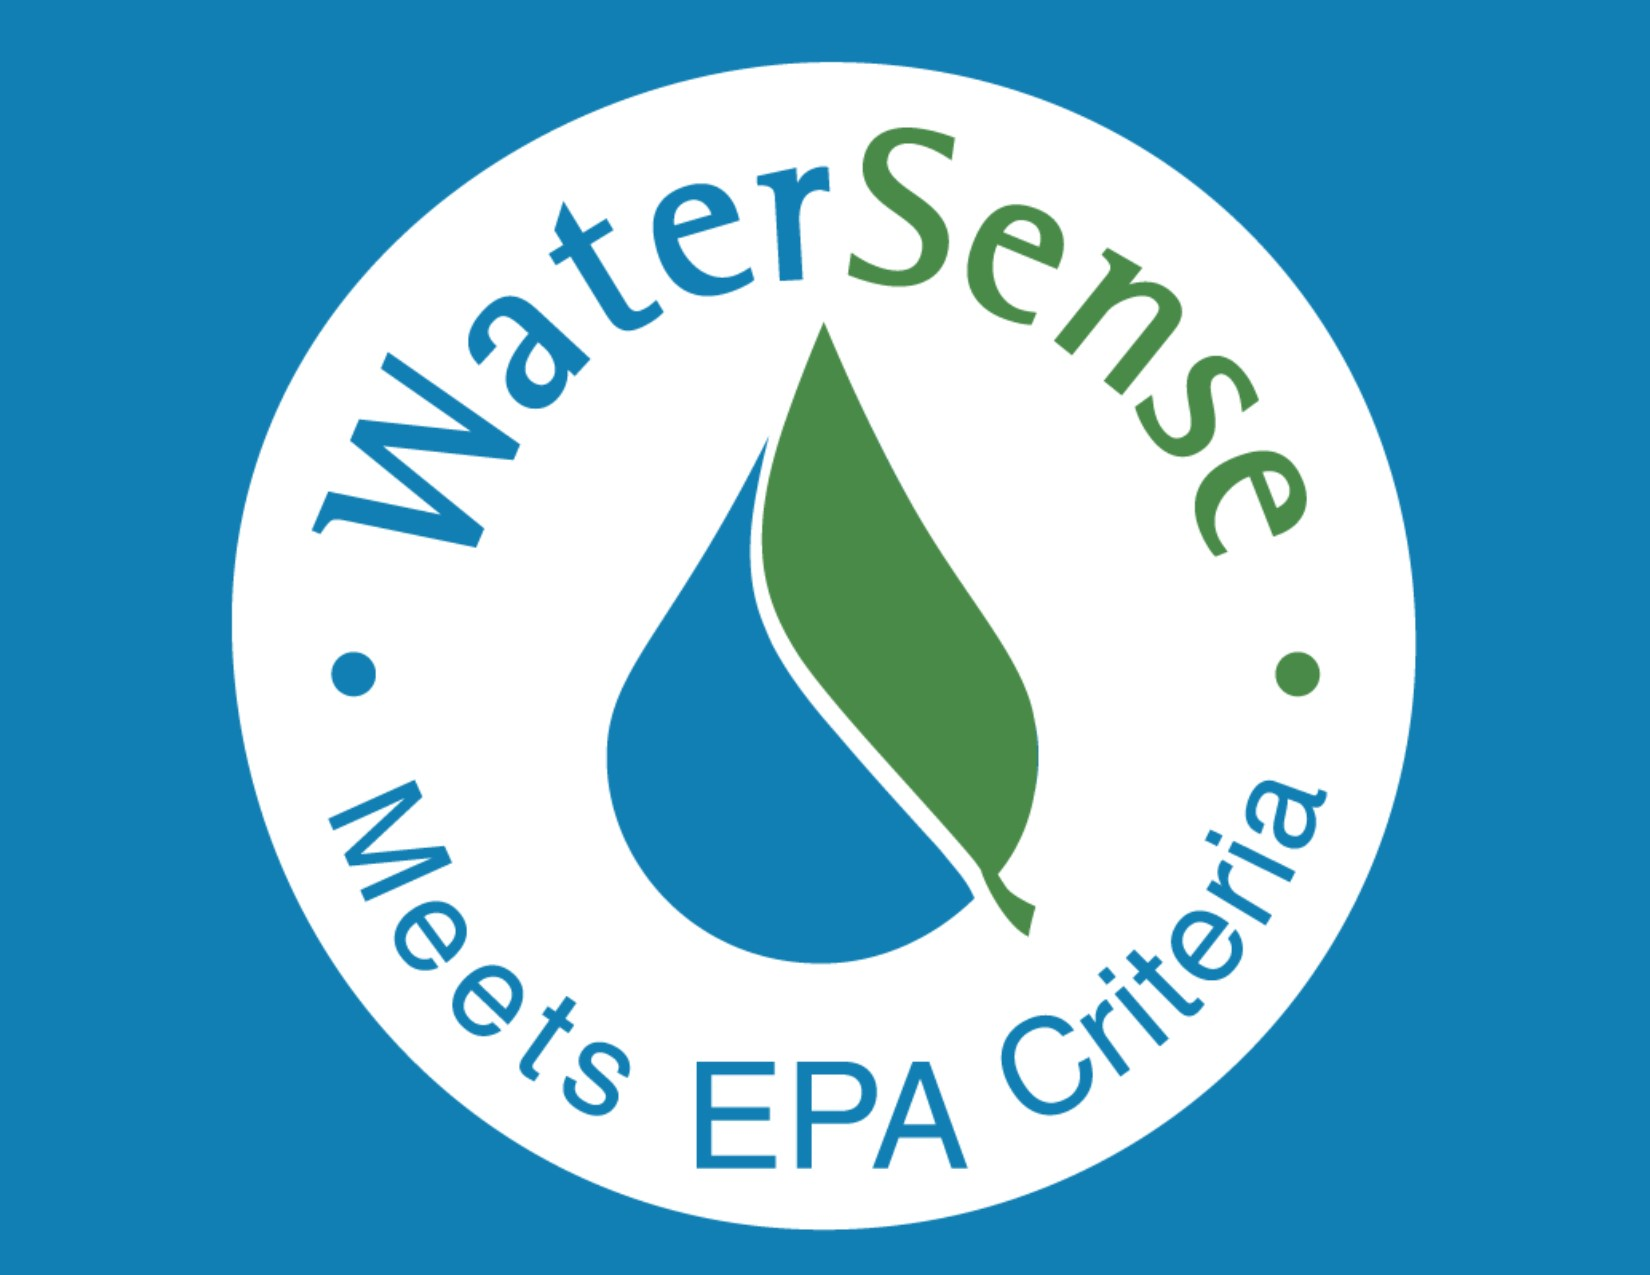 Water Conservation WaterSense